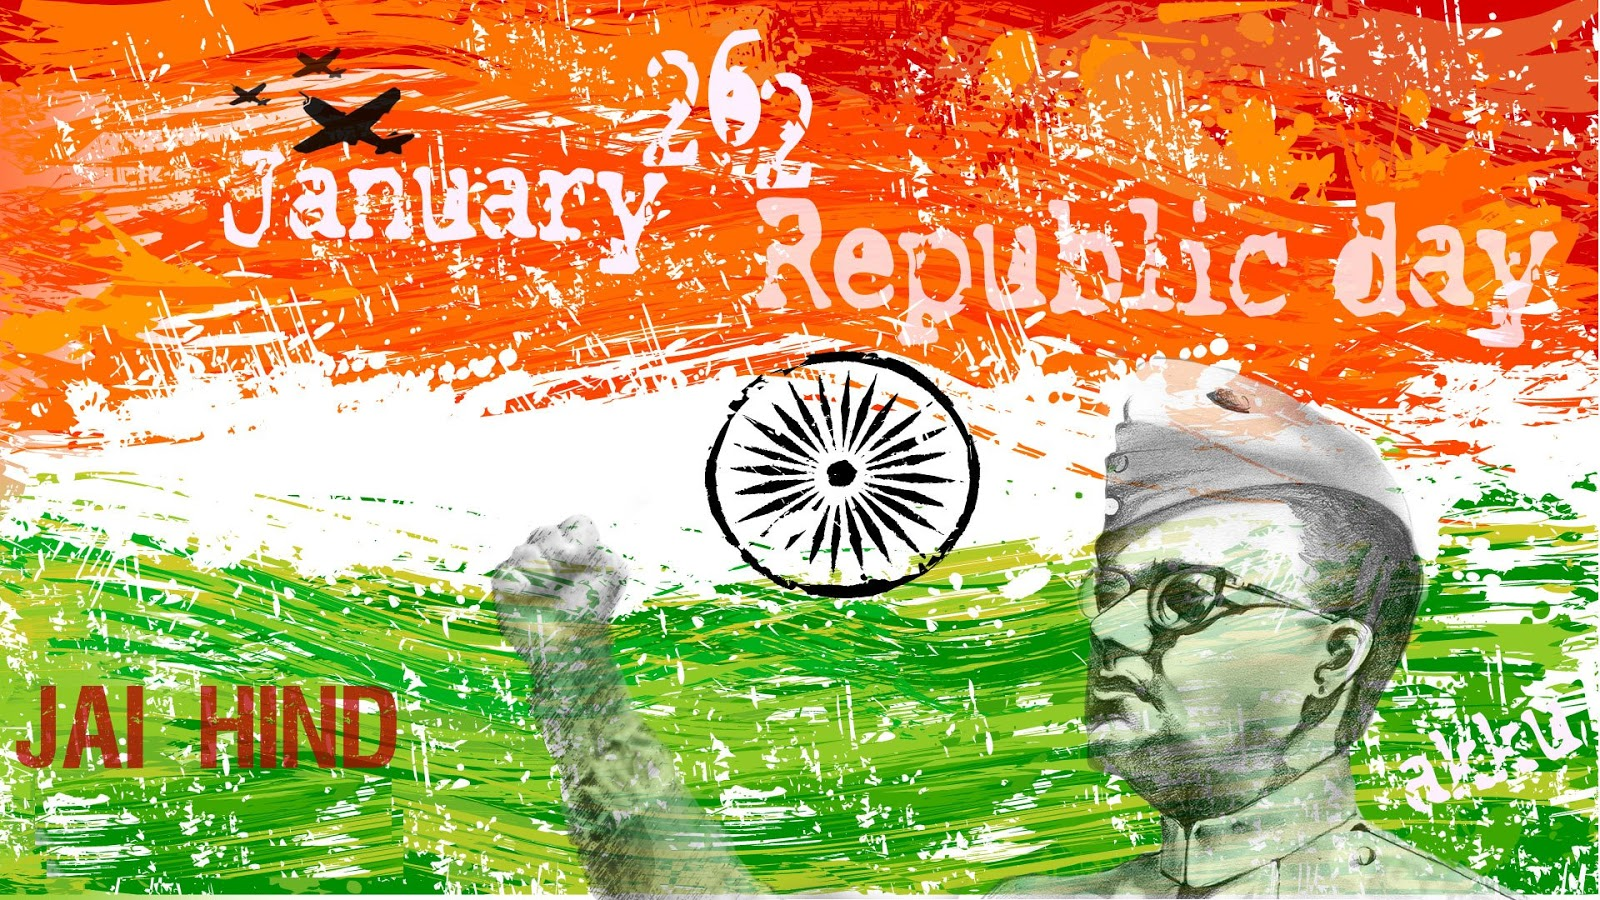 song of th republic day navrang  song